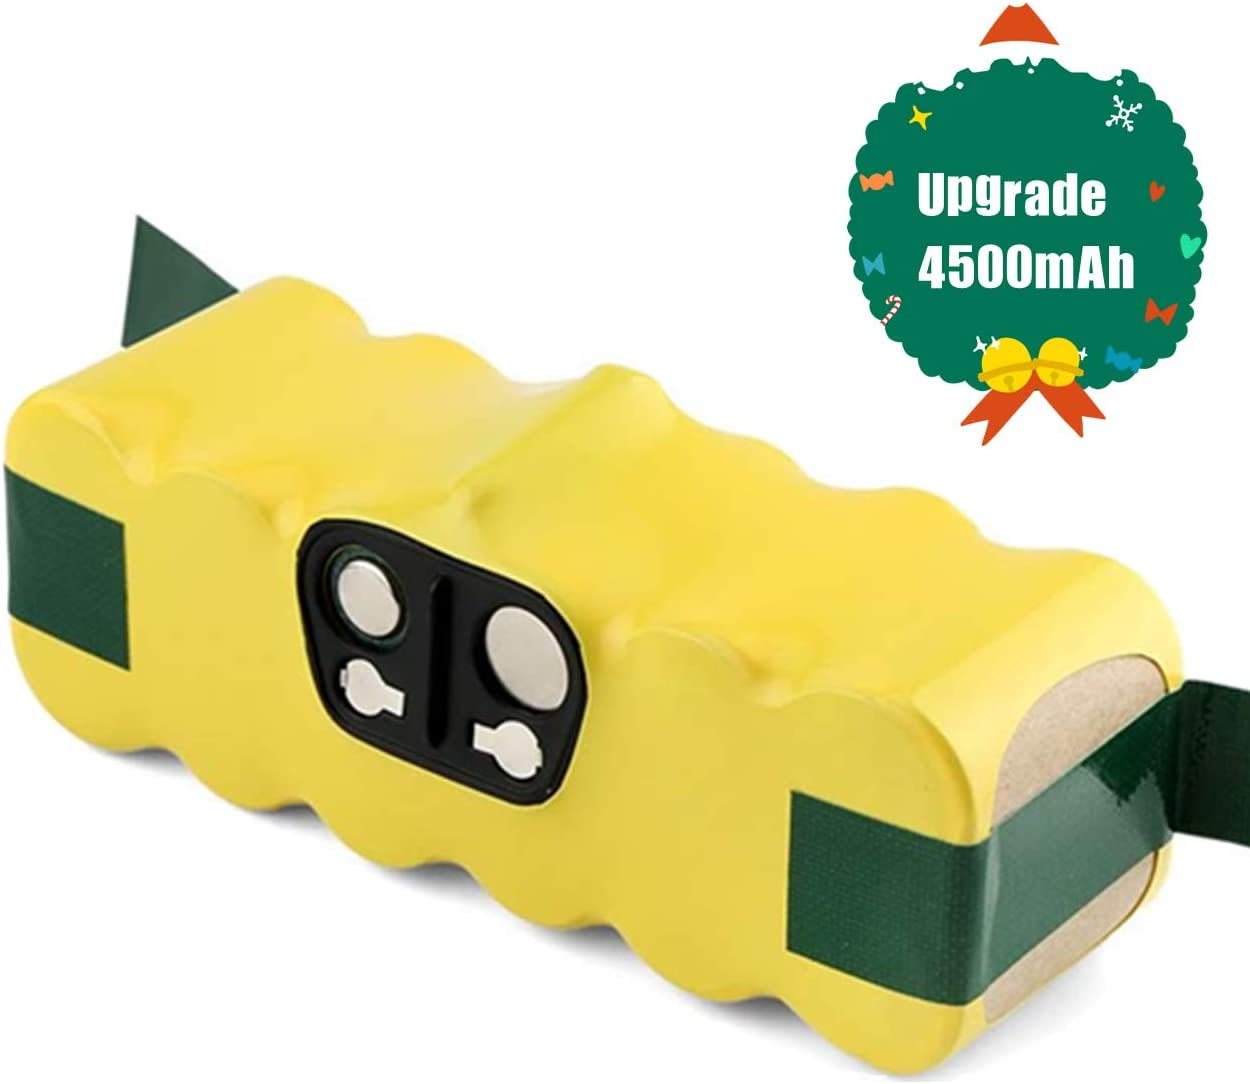 Upgraded 4.5Ah Ni-MH Battery Compatible with iRobot Roomba 14.4V R3 500 600 700 800 900 Series Robot Vacuum 510 530 531532 535 536 540 550 552 560 570 580 595 600 620 650 660 700 760 770 780 790 800 8